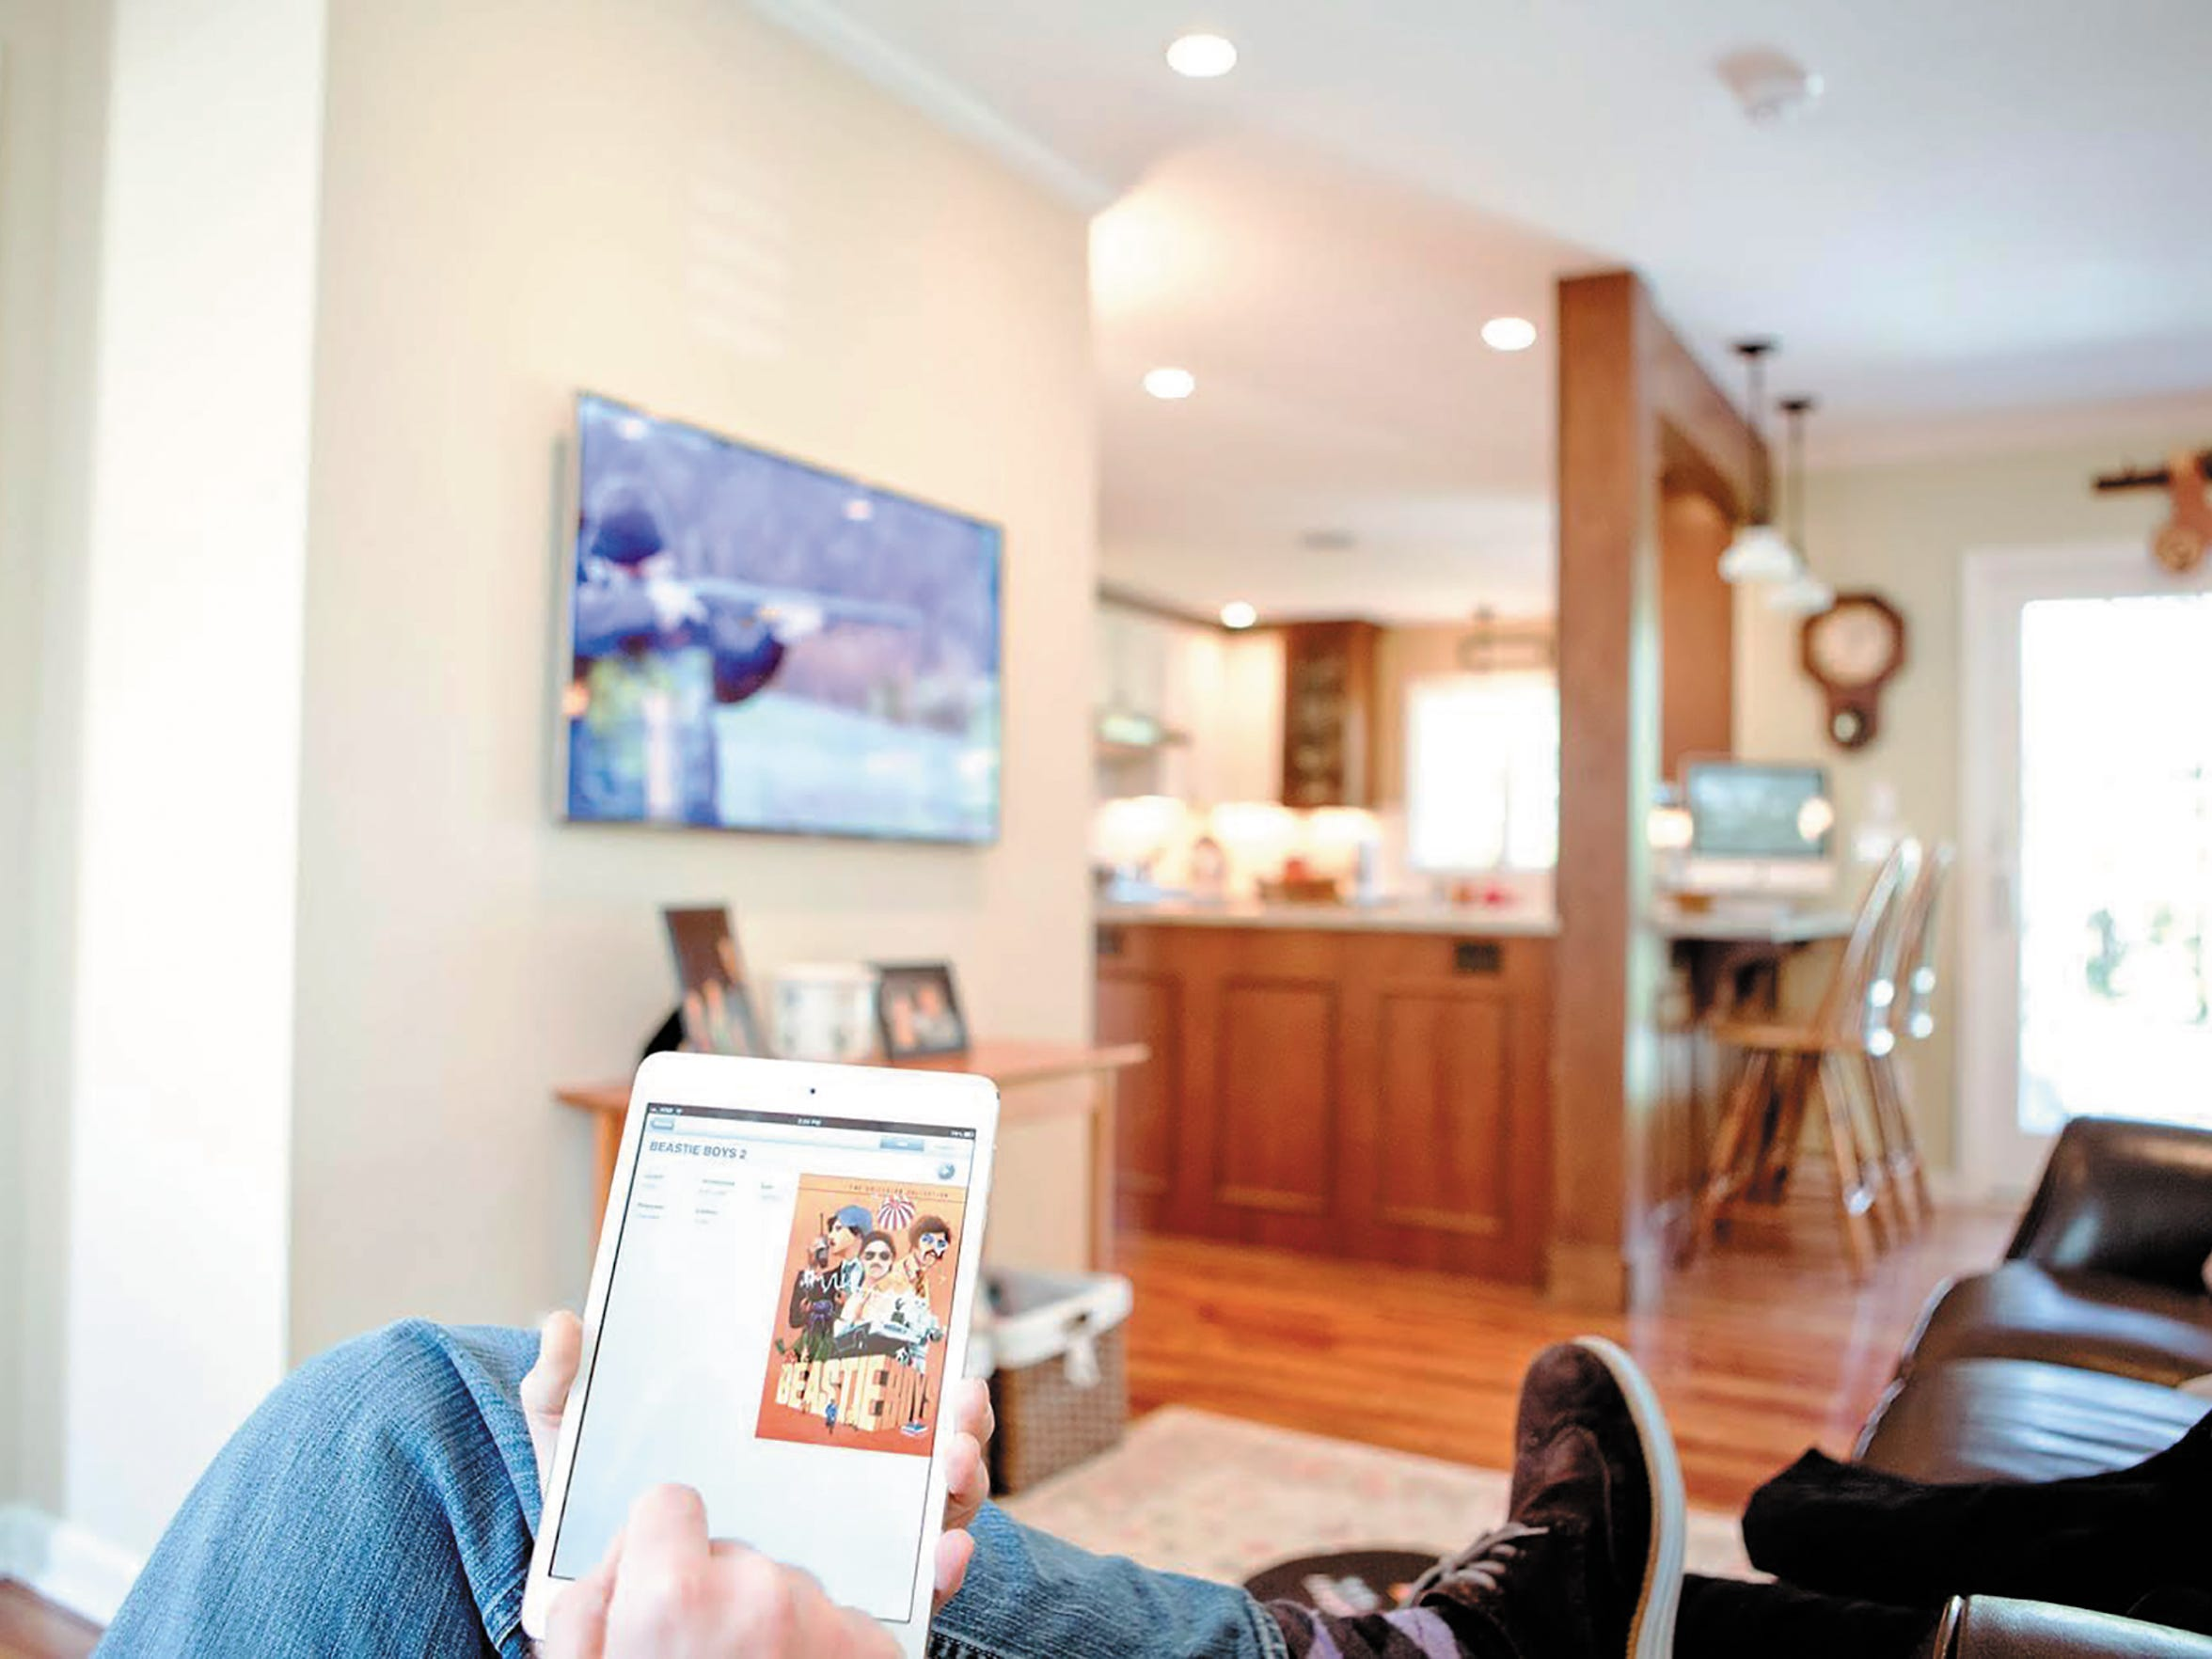 In this Brighton home, an automation system from House Digital can be controlled from a mobile device.